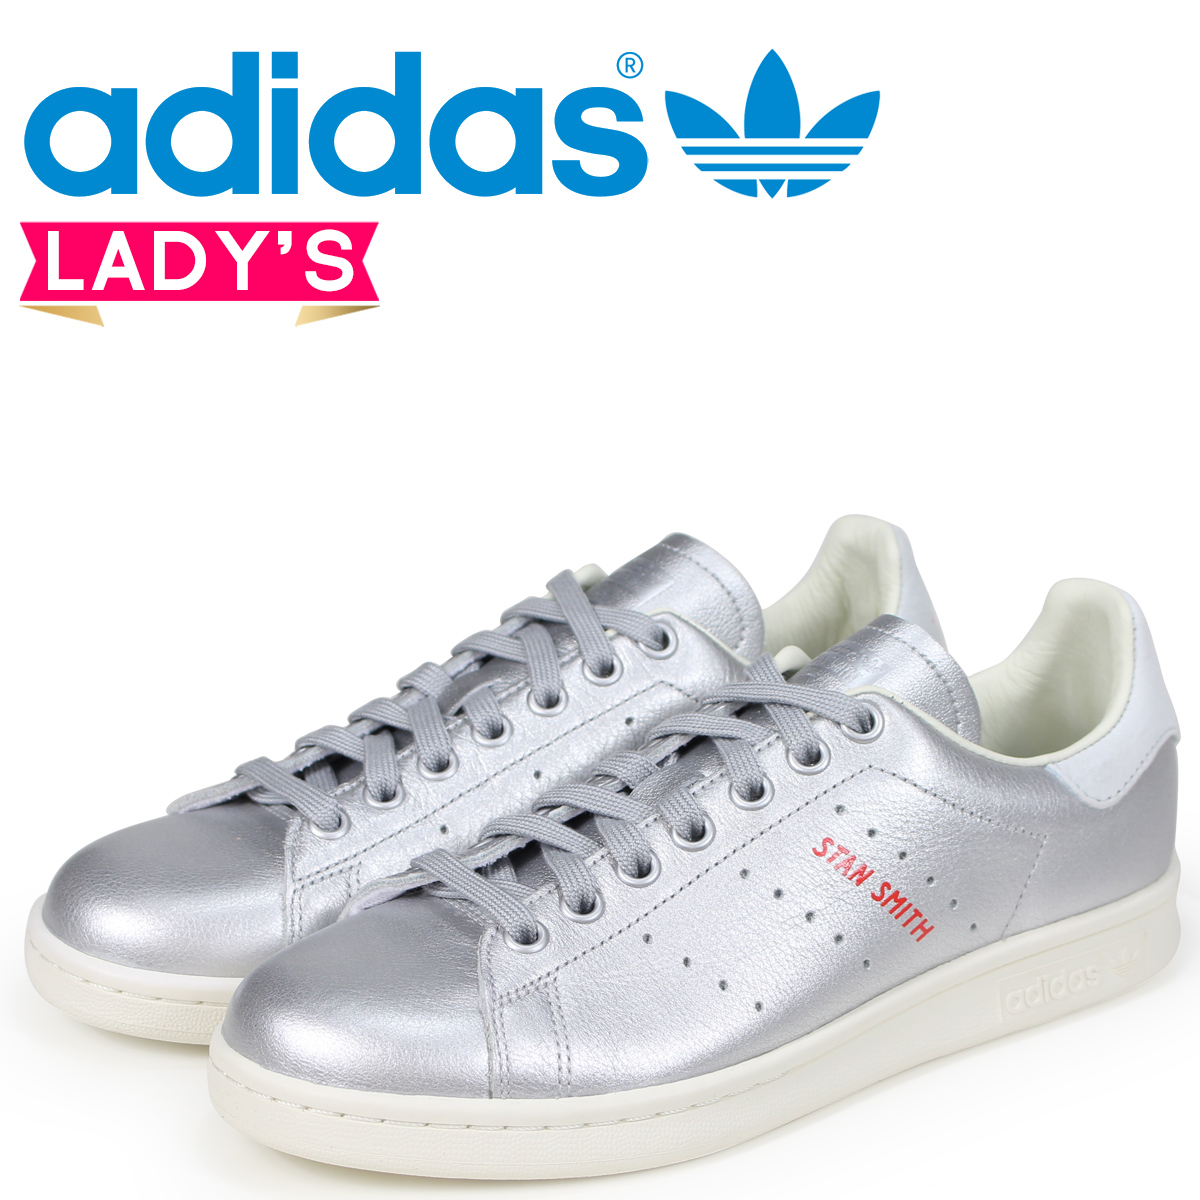 promo code 761aa a0c09 adidas Originals Stan Smith Adidas originals Ladys sneakers STAN SMITH W  B41750 silver load planned Shinnyu load in reservation product 620  containing